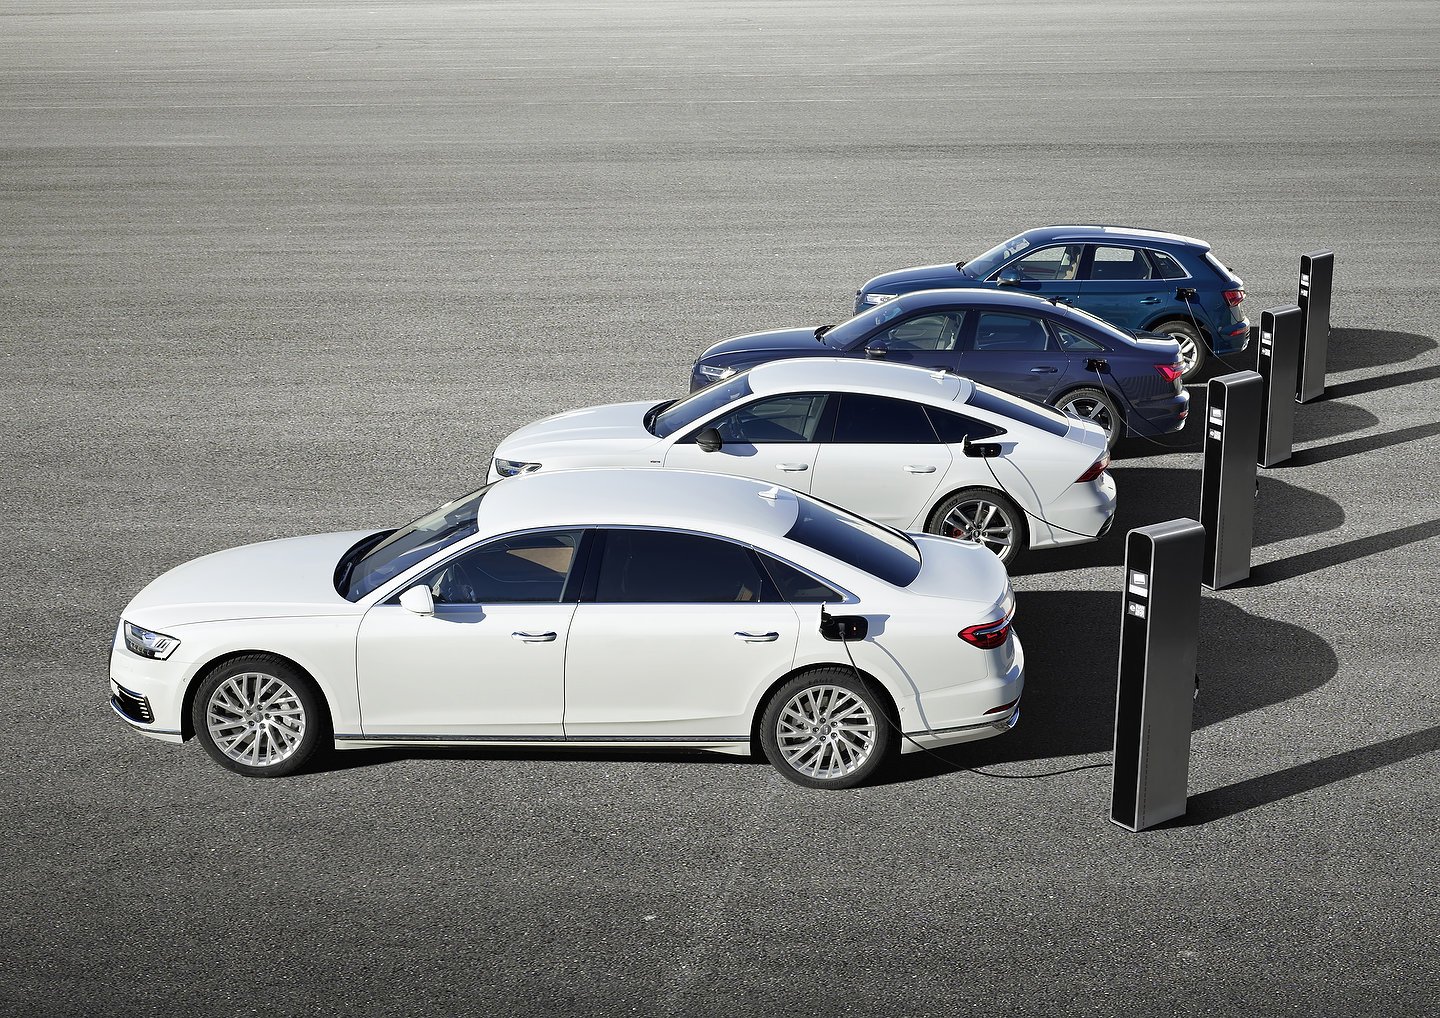 Audi Q5, A6, A7 and A8 PHEV